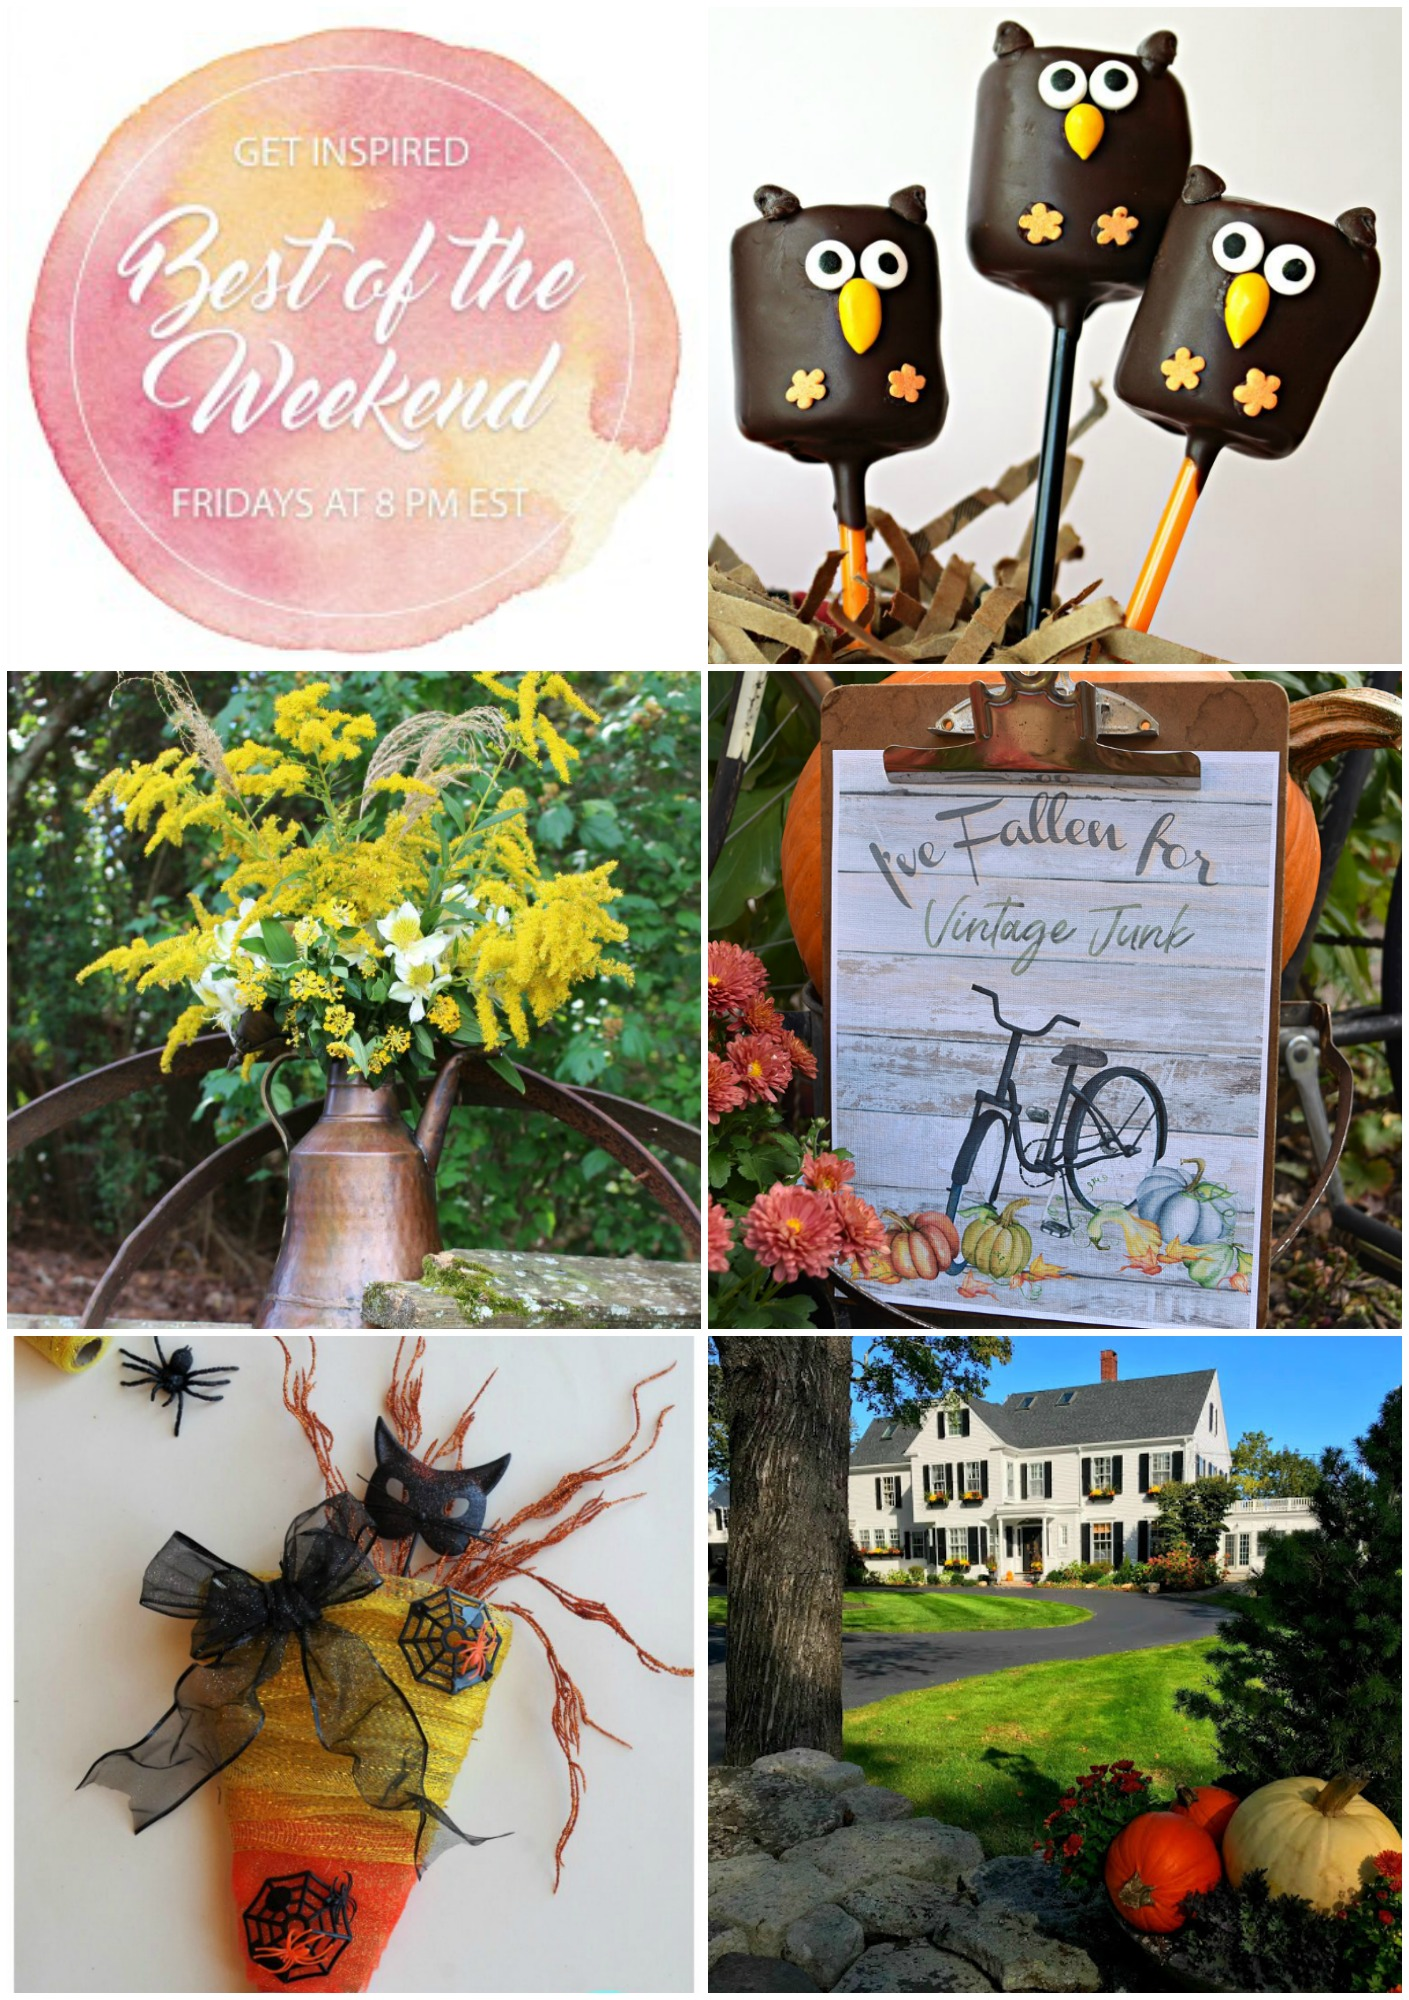 Best of the Weekend Party Features for October 26, 2018 - Owl Marshmallow Pops I Fall Floral Arrangement with Copper I Free Fall Printables I DIY Halloween Wreath I Fall Decor and Party Details